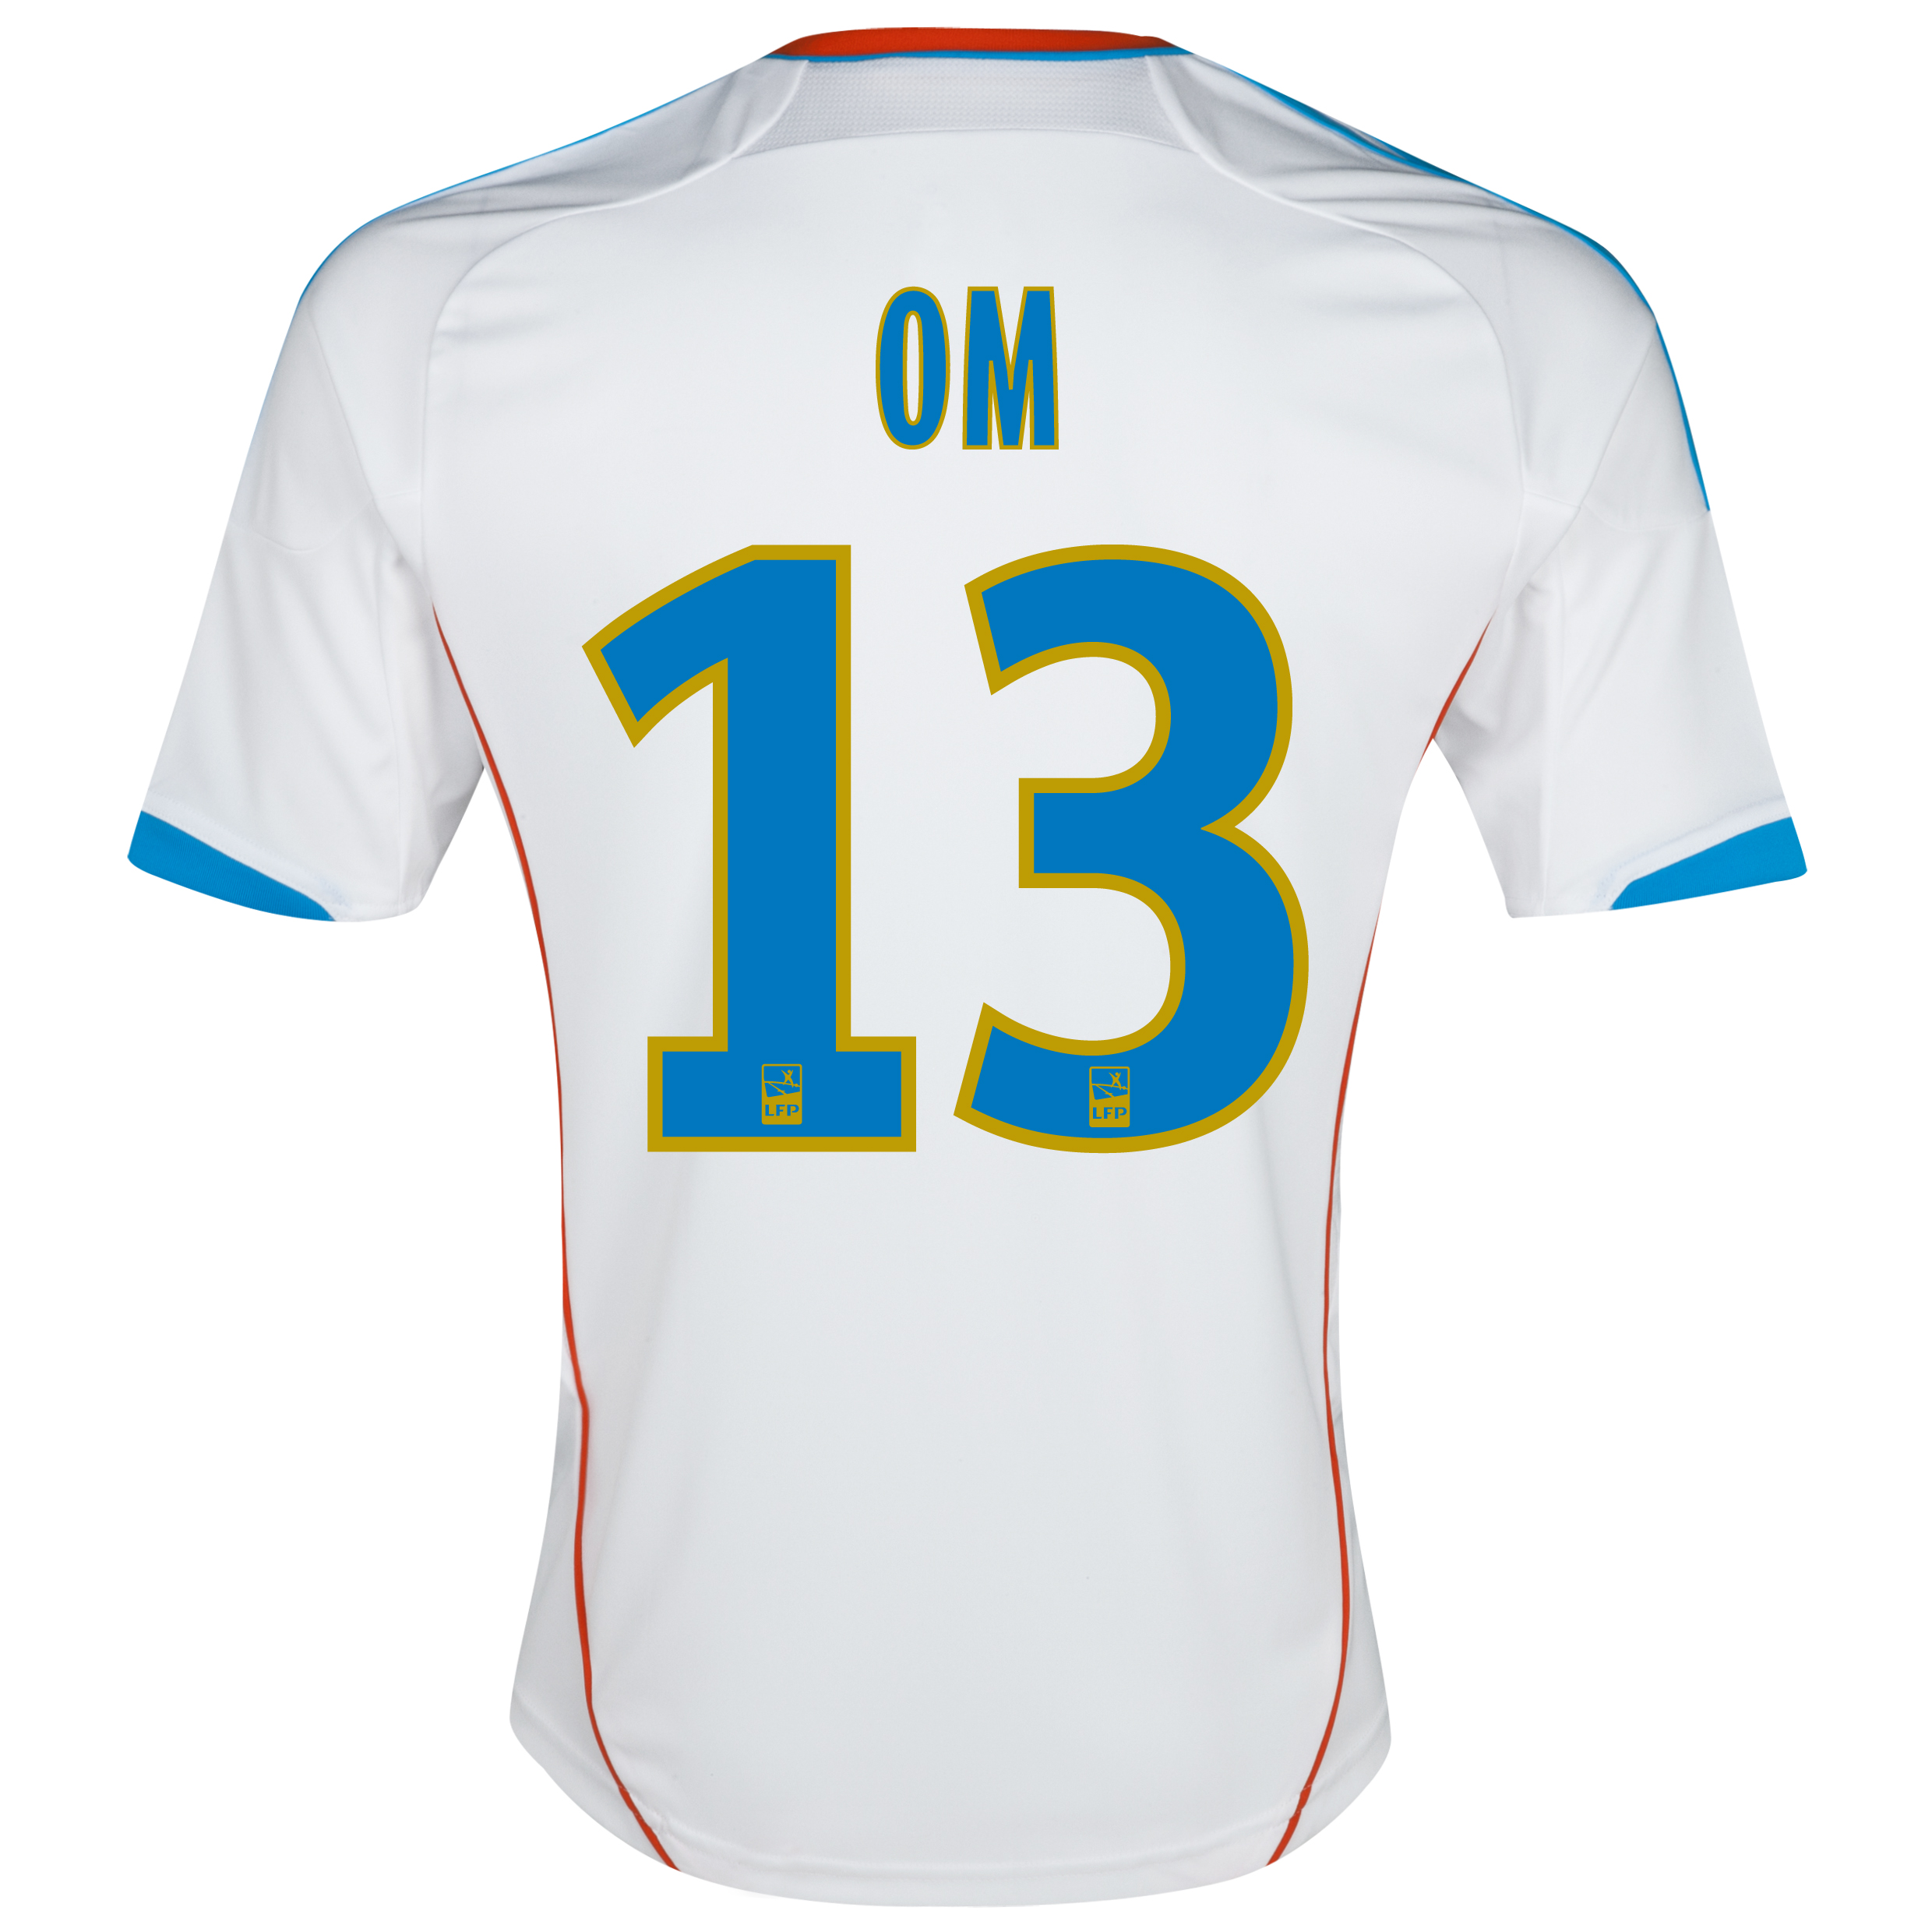 Olympique de Marseille Replica Home Shirt 2012/13 with OM 13 printing